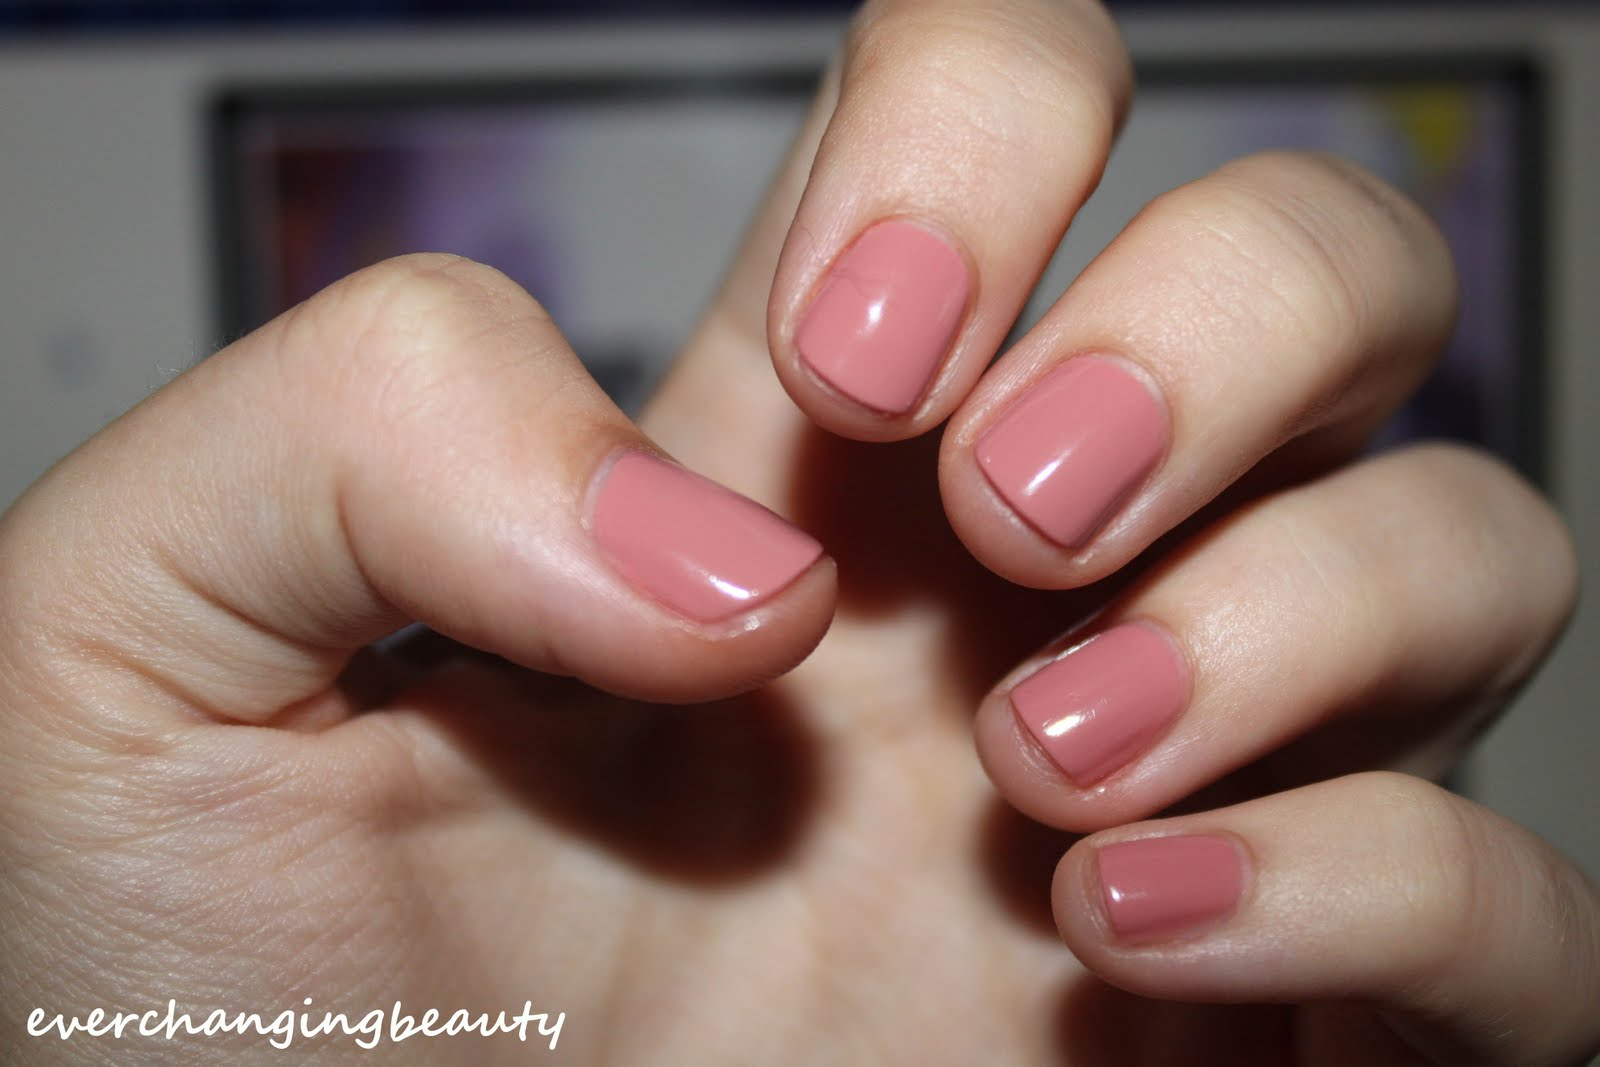 The Essie Website Calls It A Spiced Tea Rose With Dash Of Cream Saying Future Looks Brilliant In Warm Nail Polish